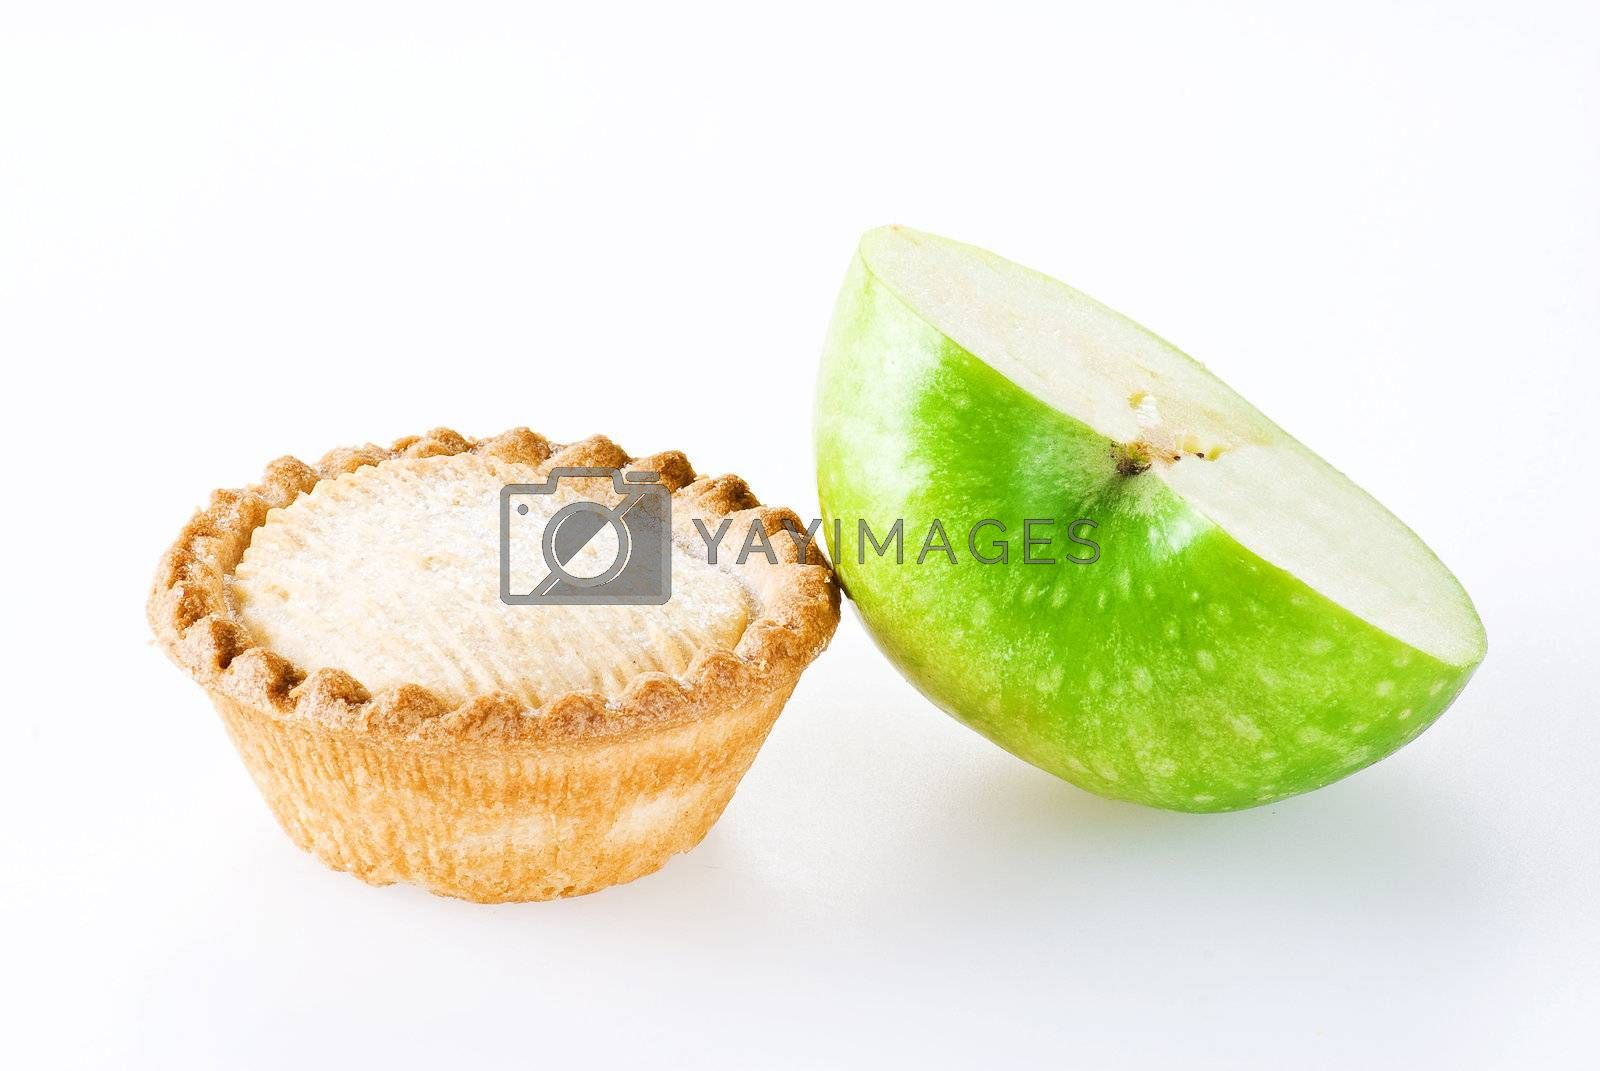 Apple pie and half of apple by caldix